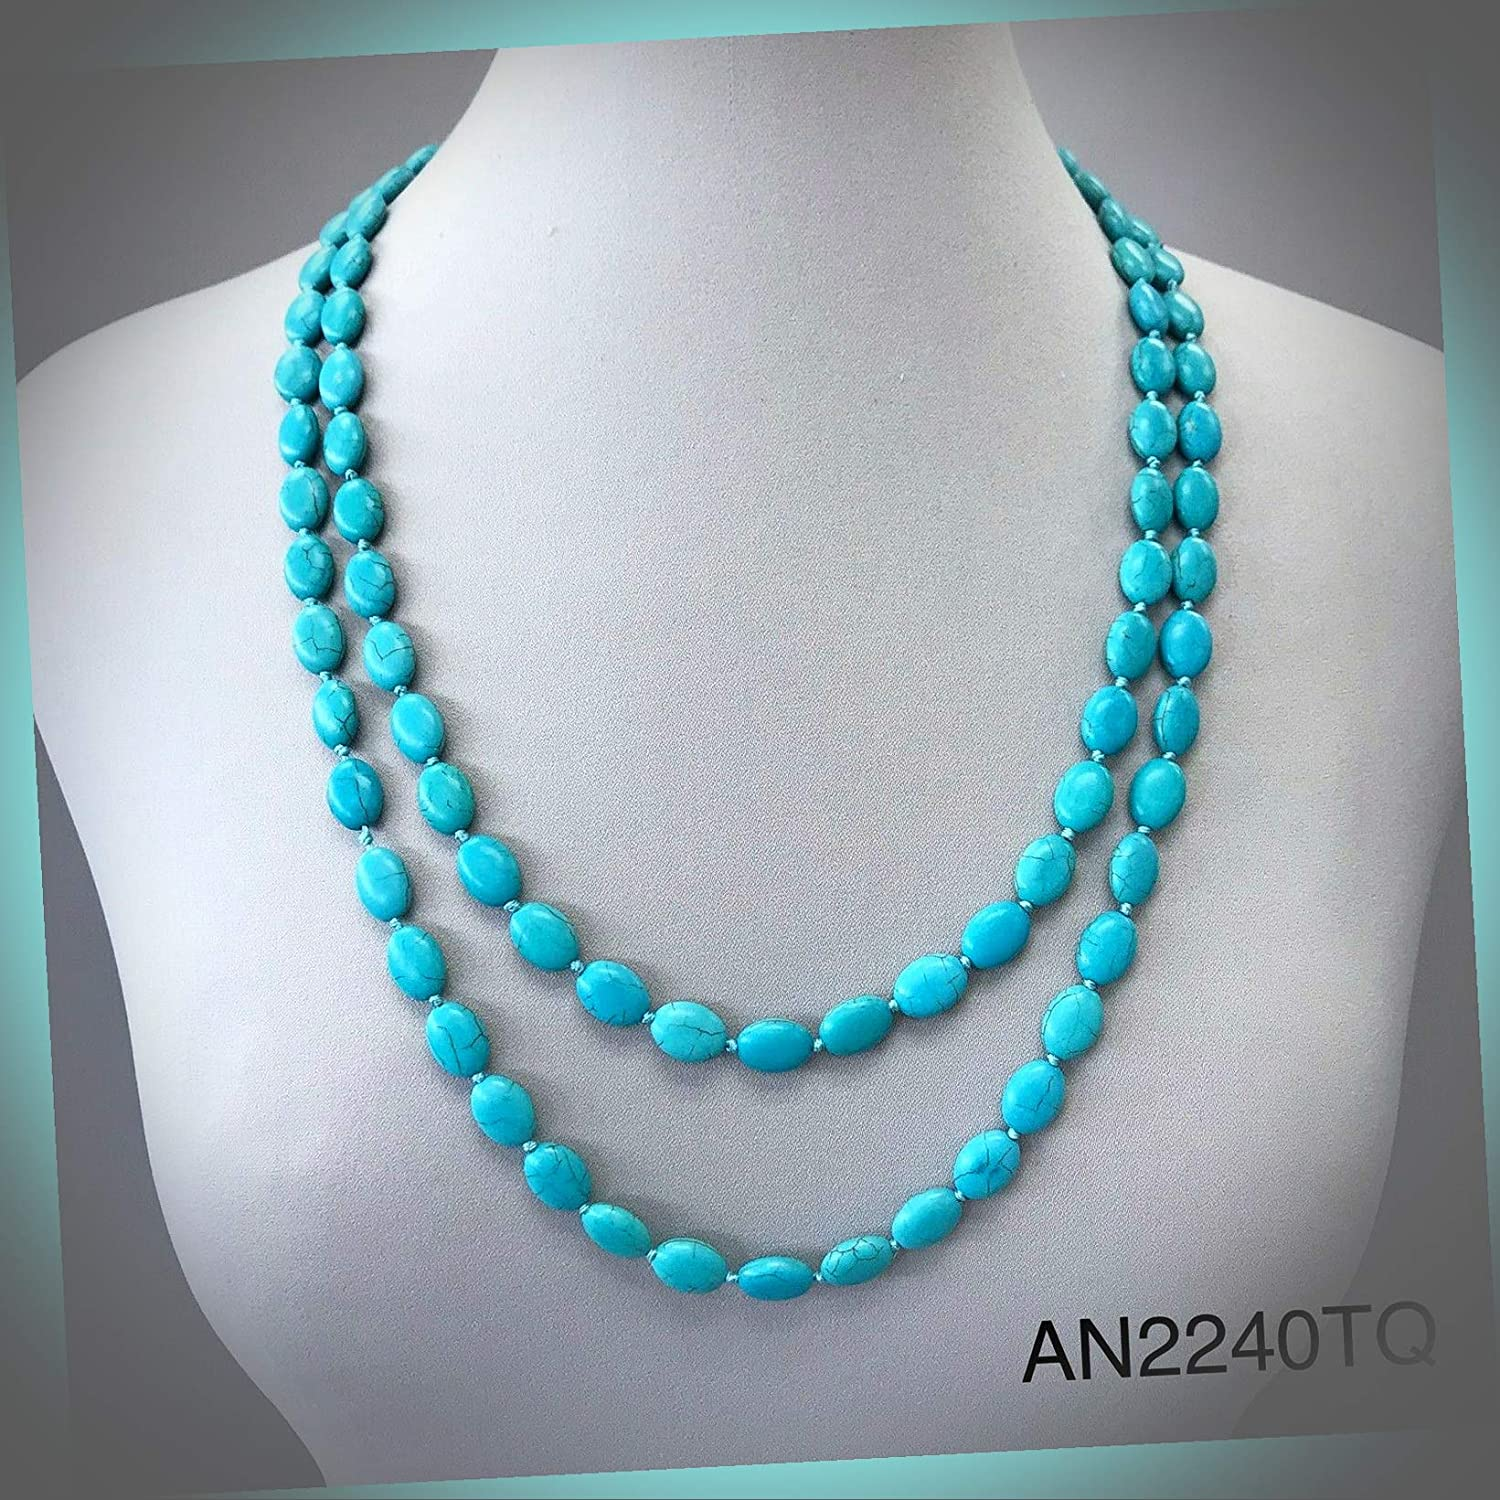 New Bohemian Wrap Around Long Oval Flat Knotted Smooth Turquoise Beaded Wonderful Necklace ALI-N1934E Gift for Women Girls Charm Necklace by InnaBest